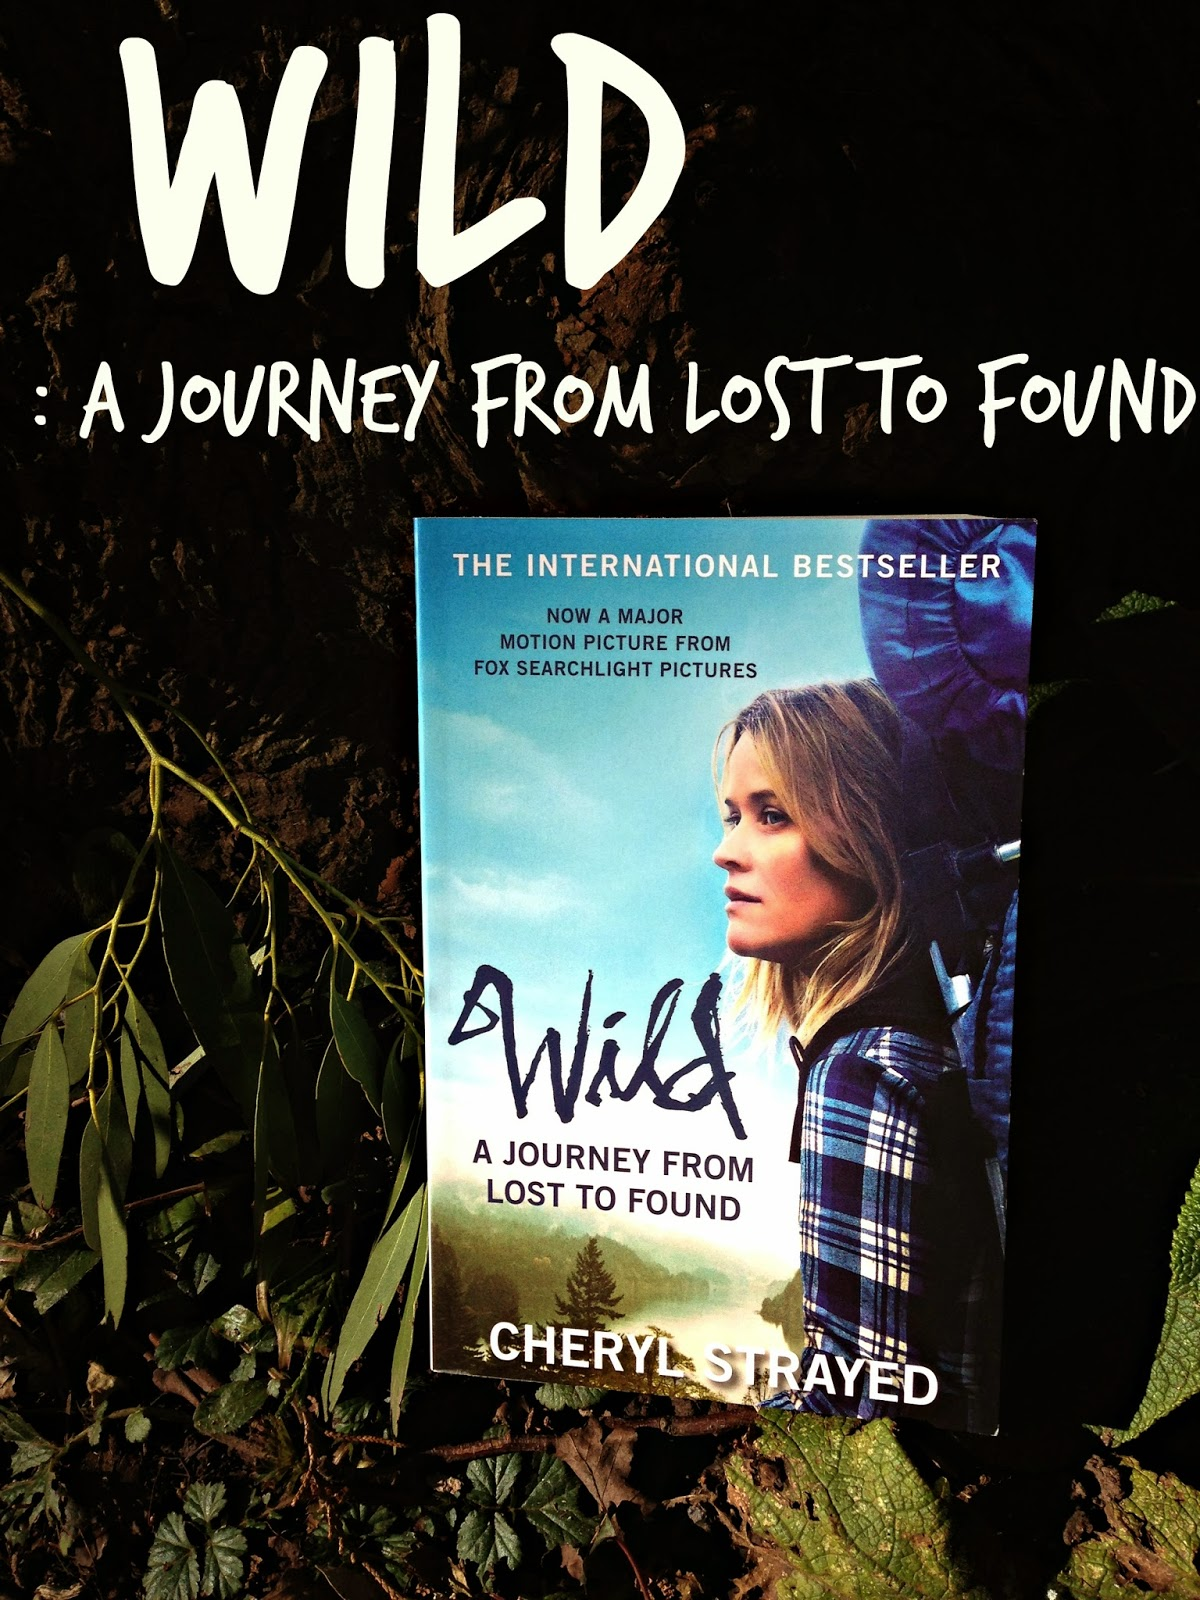 Wild: A Journey From Lost To Found- Cheryl Strayed